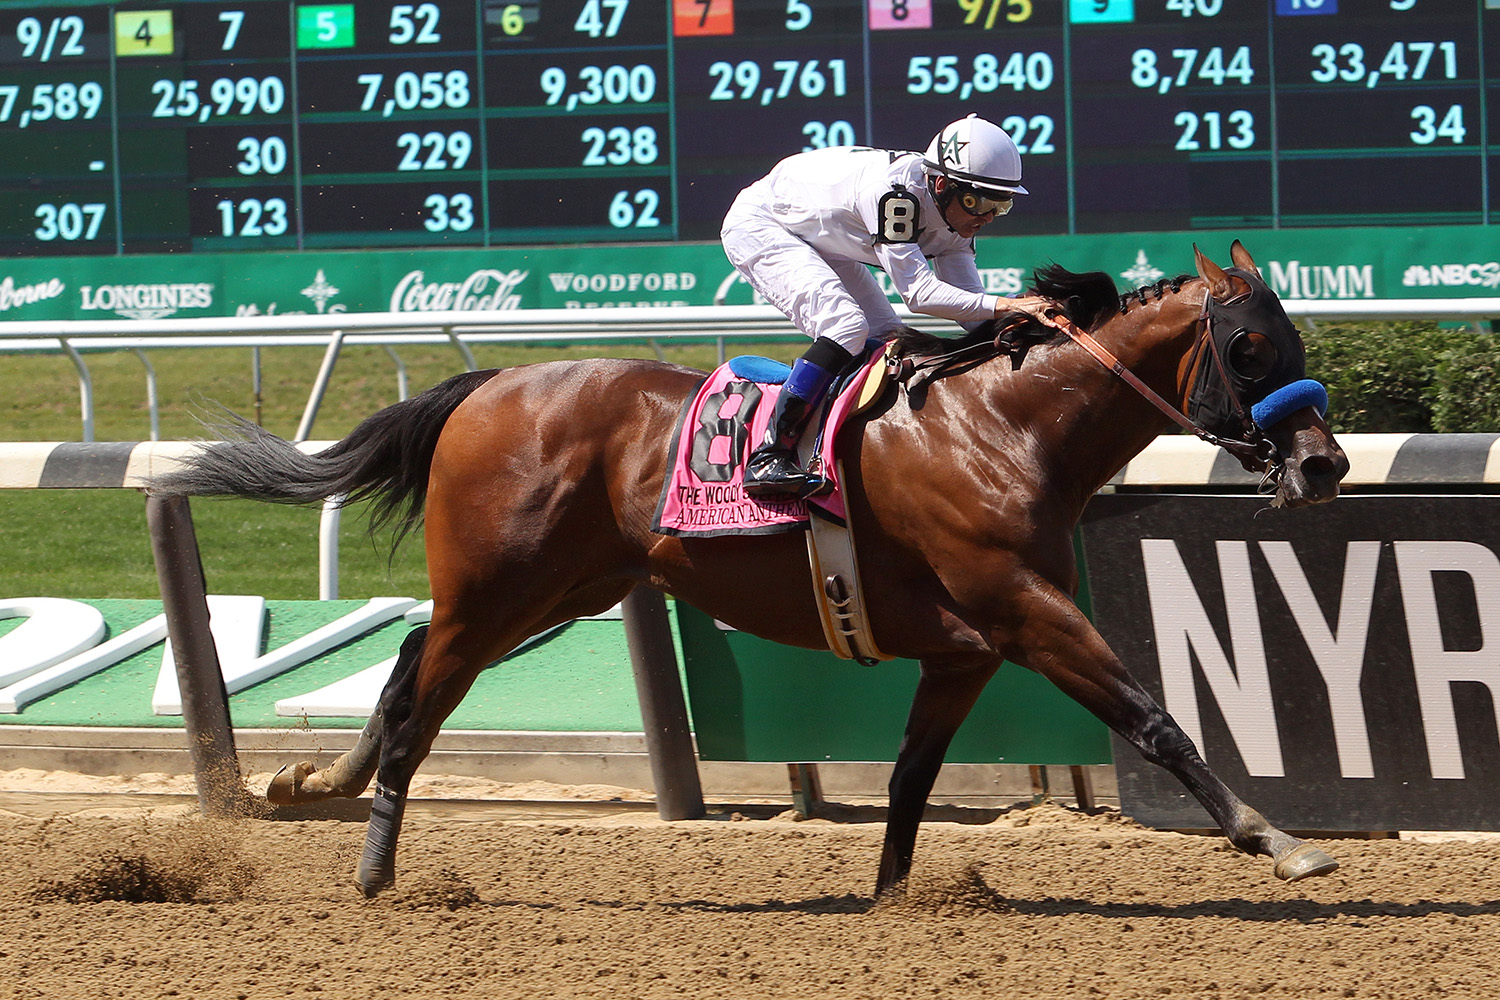 American Anthem wins the 2017 G2 Woody Stephens with Mike Smith up for trainer Bob Baffert and owners WinStar Farm, Head of Plains Partners, China Horse Club, and SF Racing, 2017 Belmont Stakes